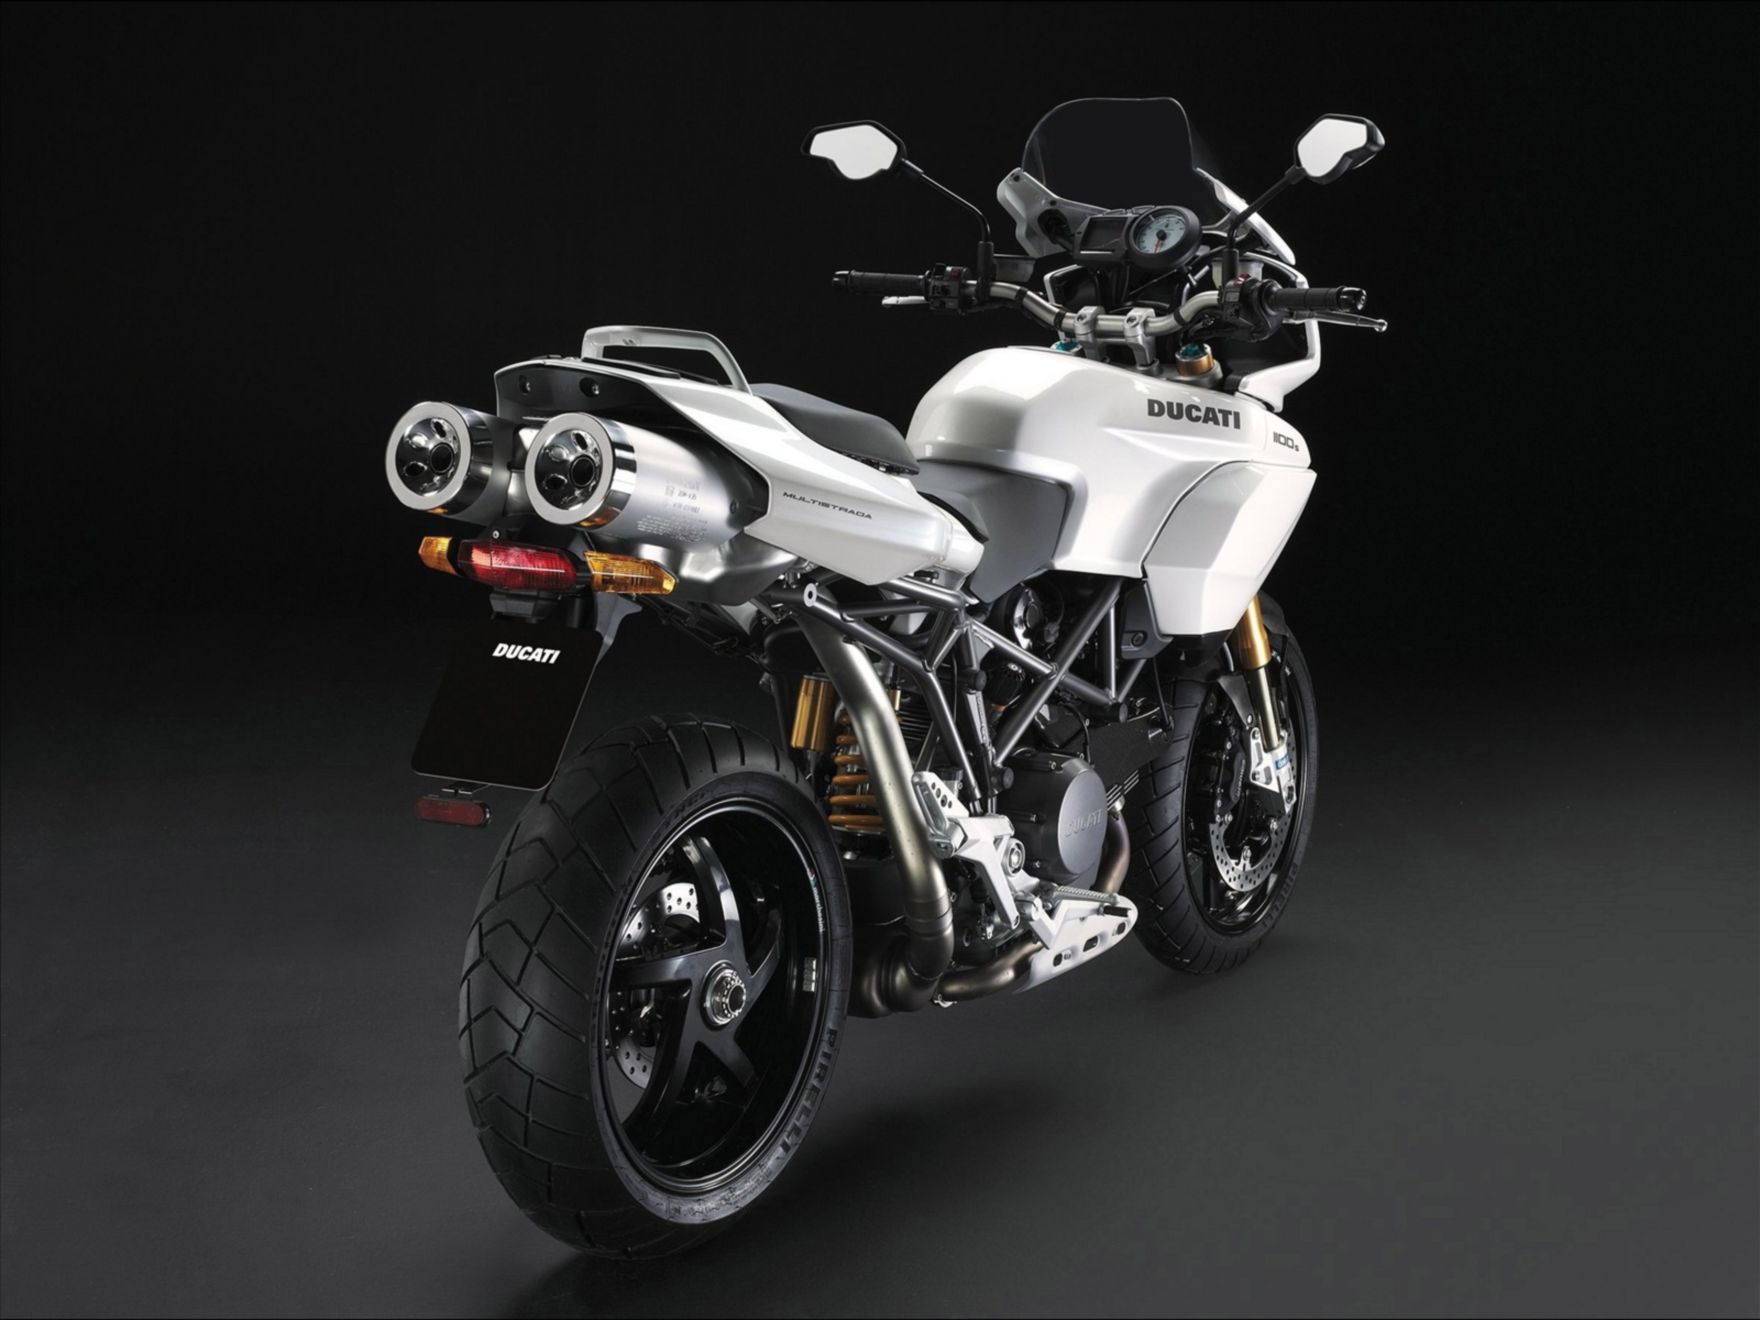 Download free HD Ducati New Pearl White Livery Normal Wallpaper, image